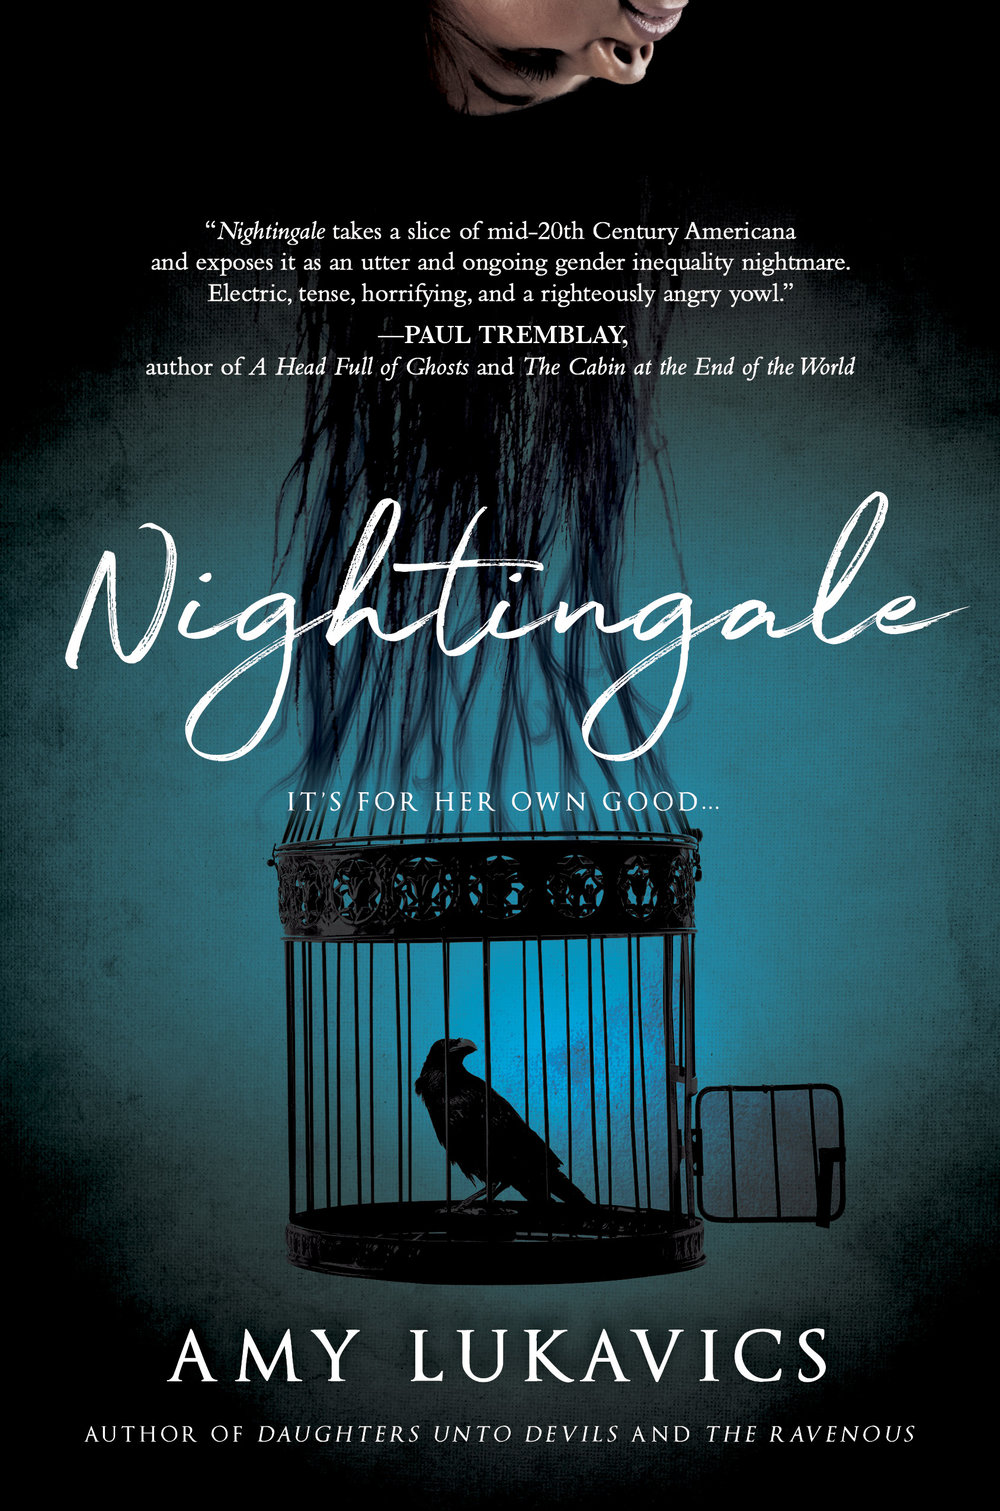 Nightingale book cover by author Amy Lukavics